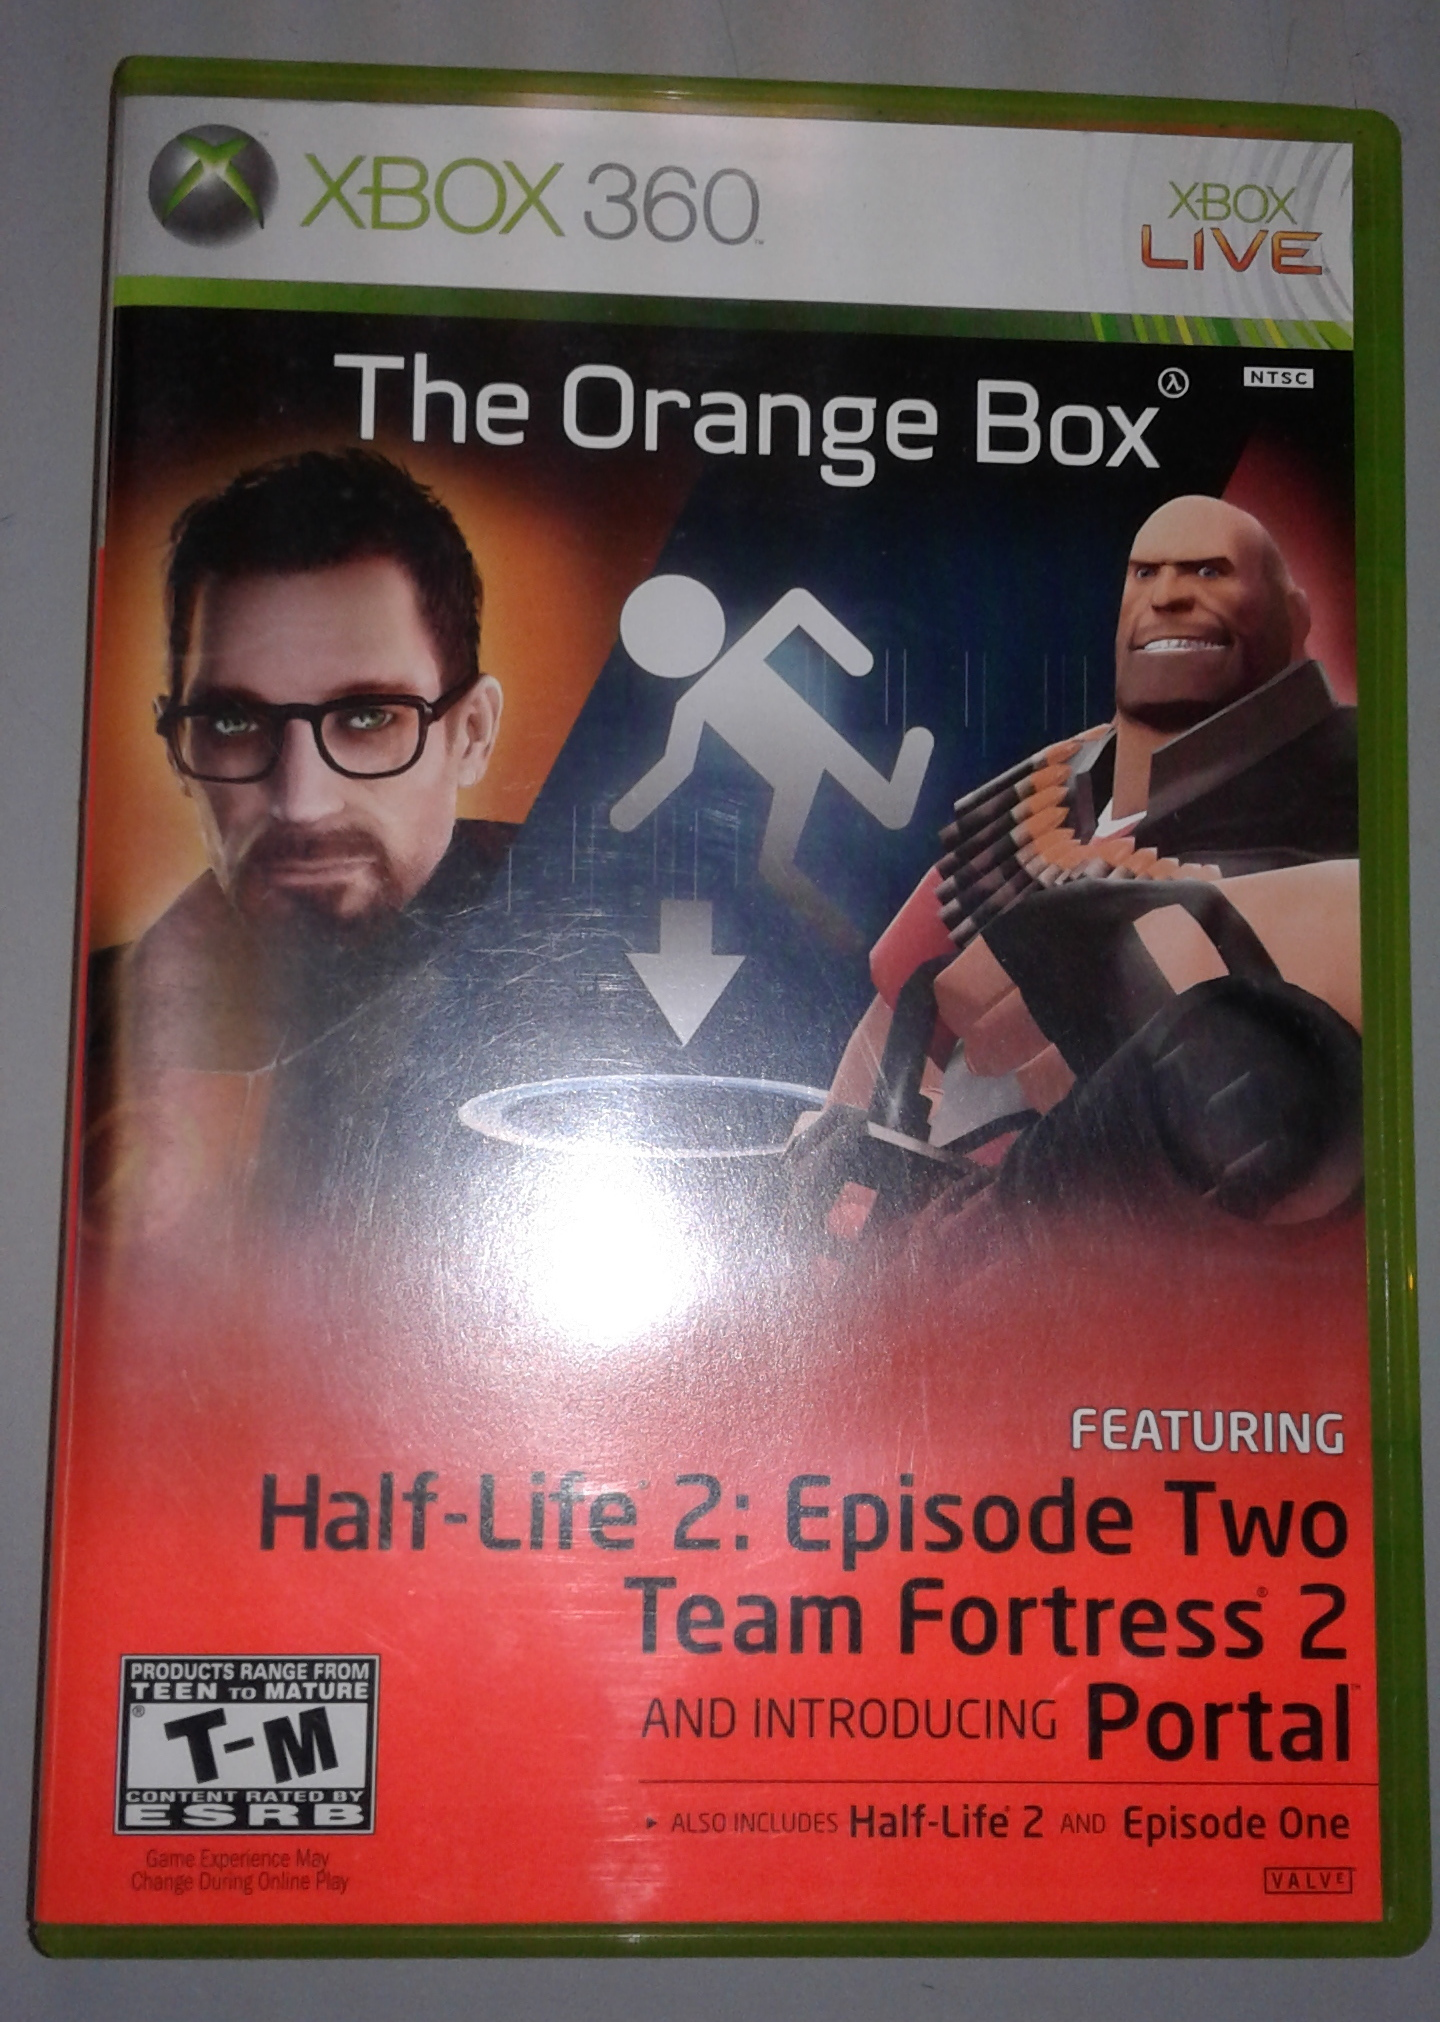 THE ORANGE BOX- HALF-LIFE 2: EPISODE 2 TEAM FORTRESS 2 PORTAL